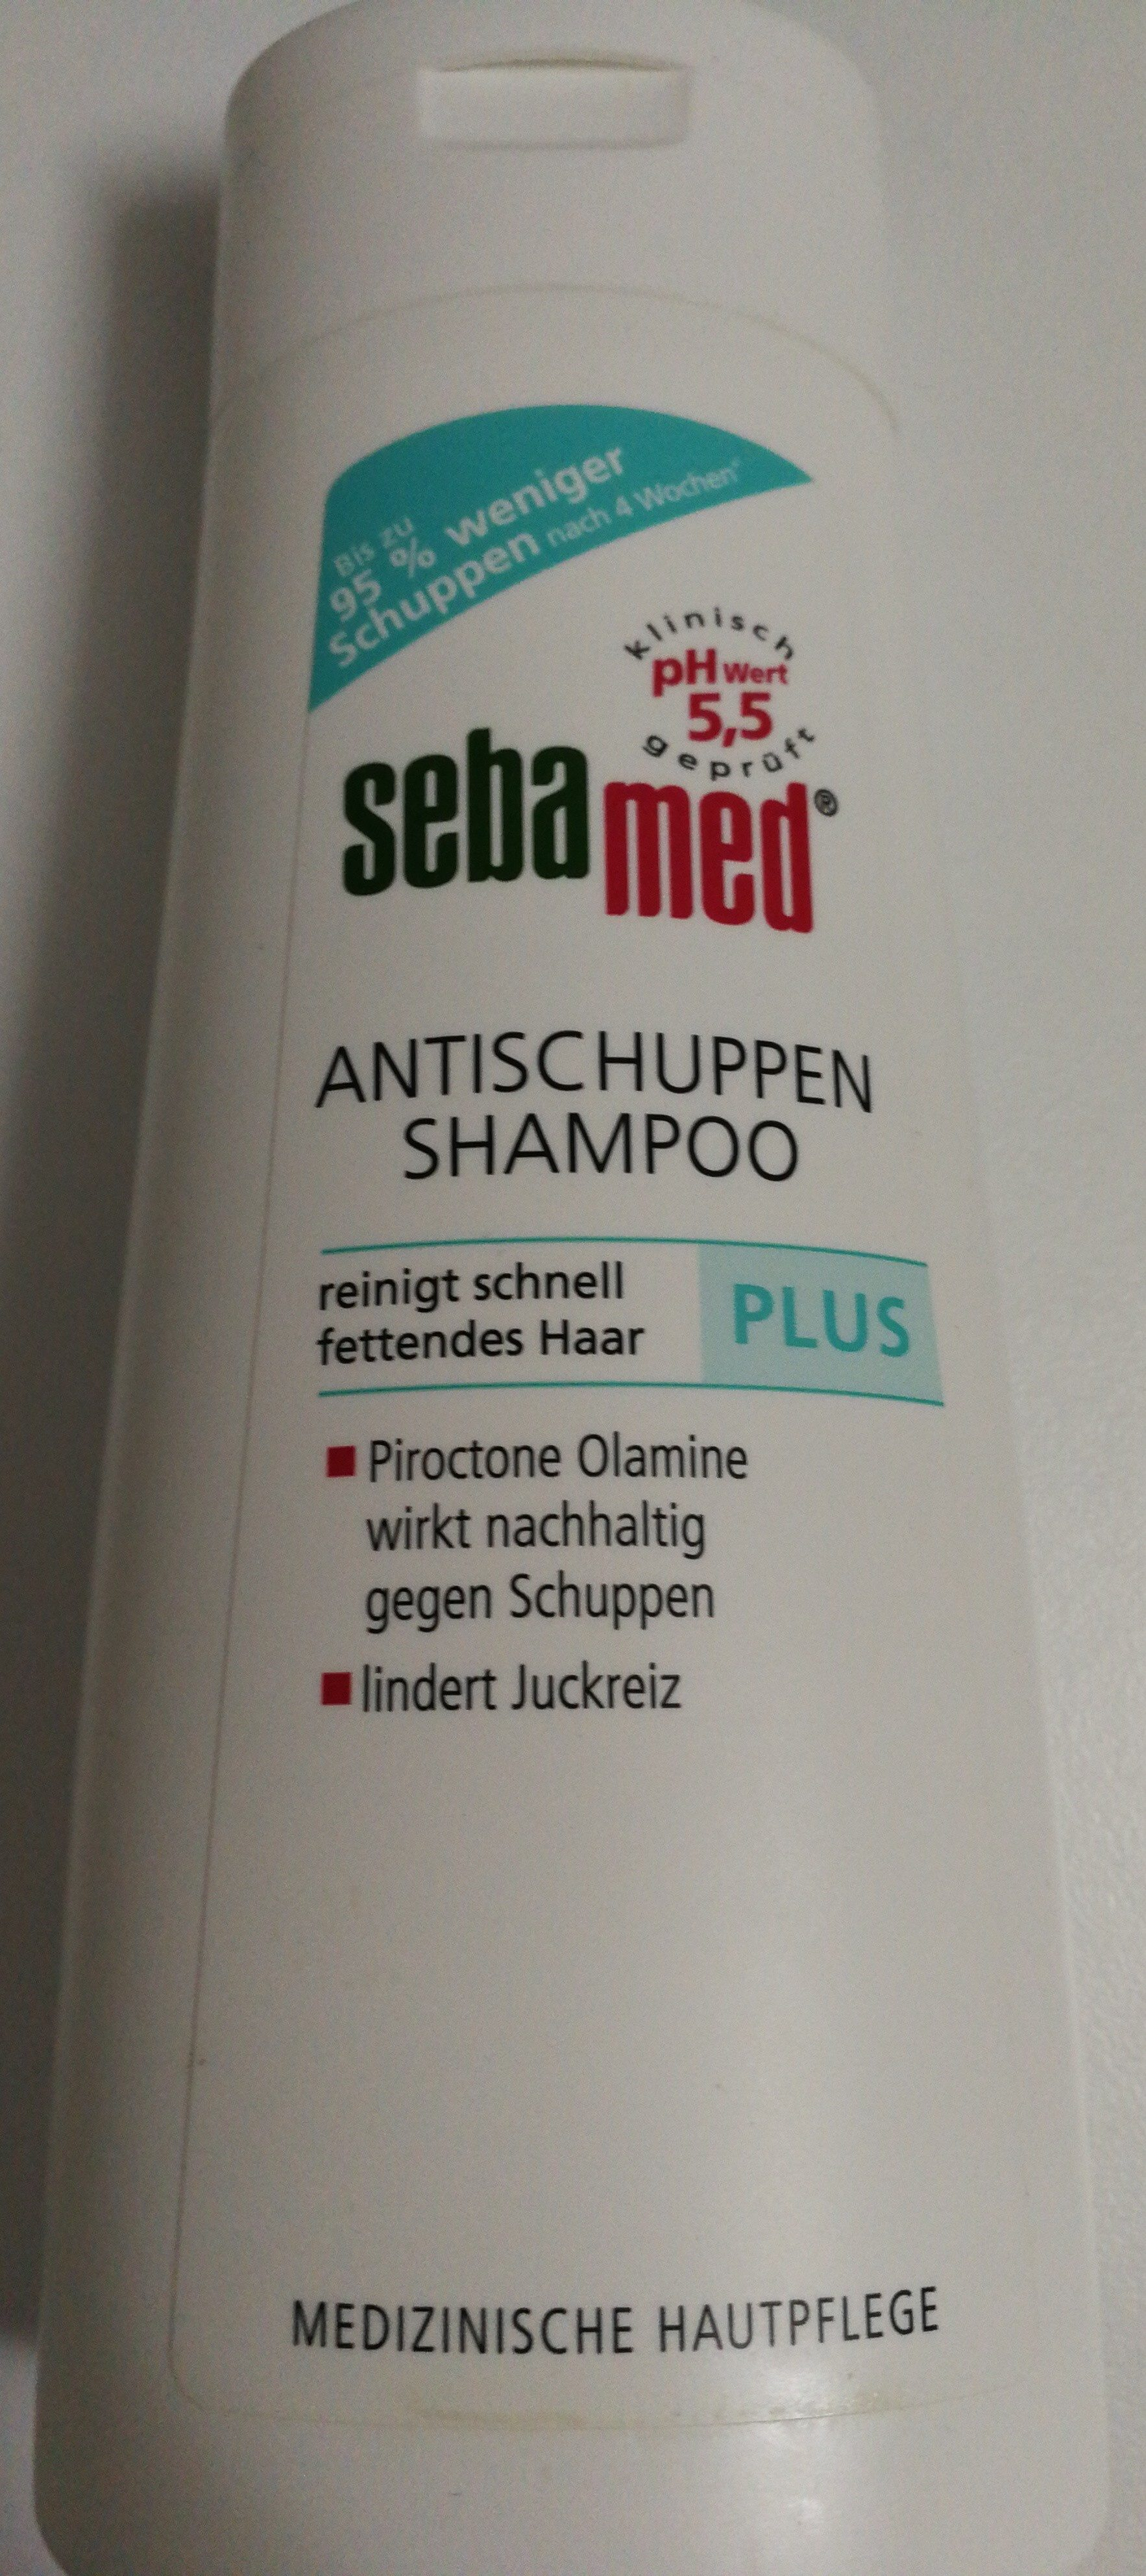 Antischuppen Shampoo - Product